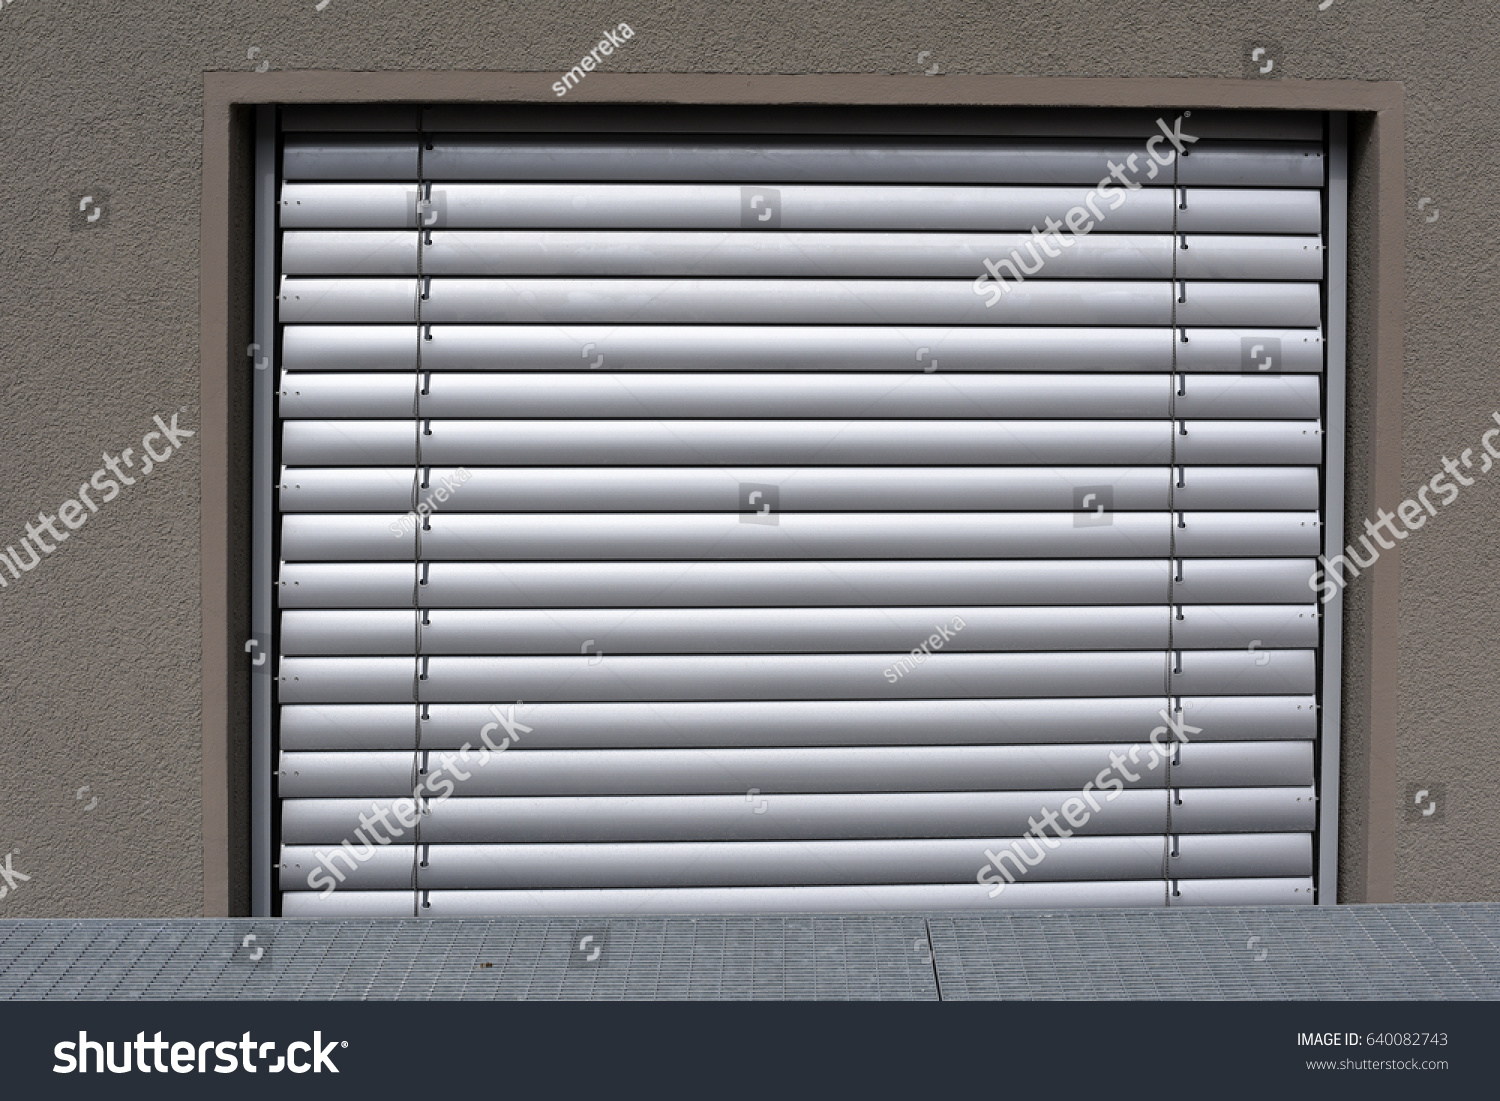 Basement Blinds Rigid Blinds Remote Control On Window Stock Photo Edit Now